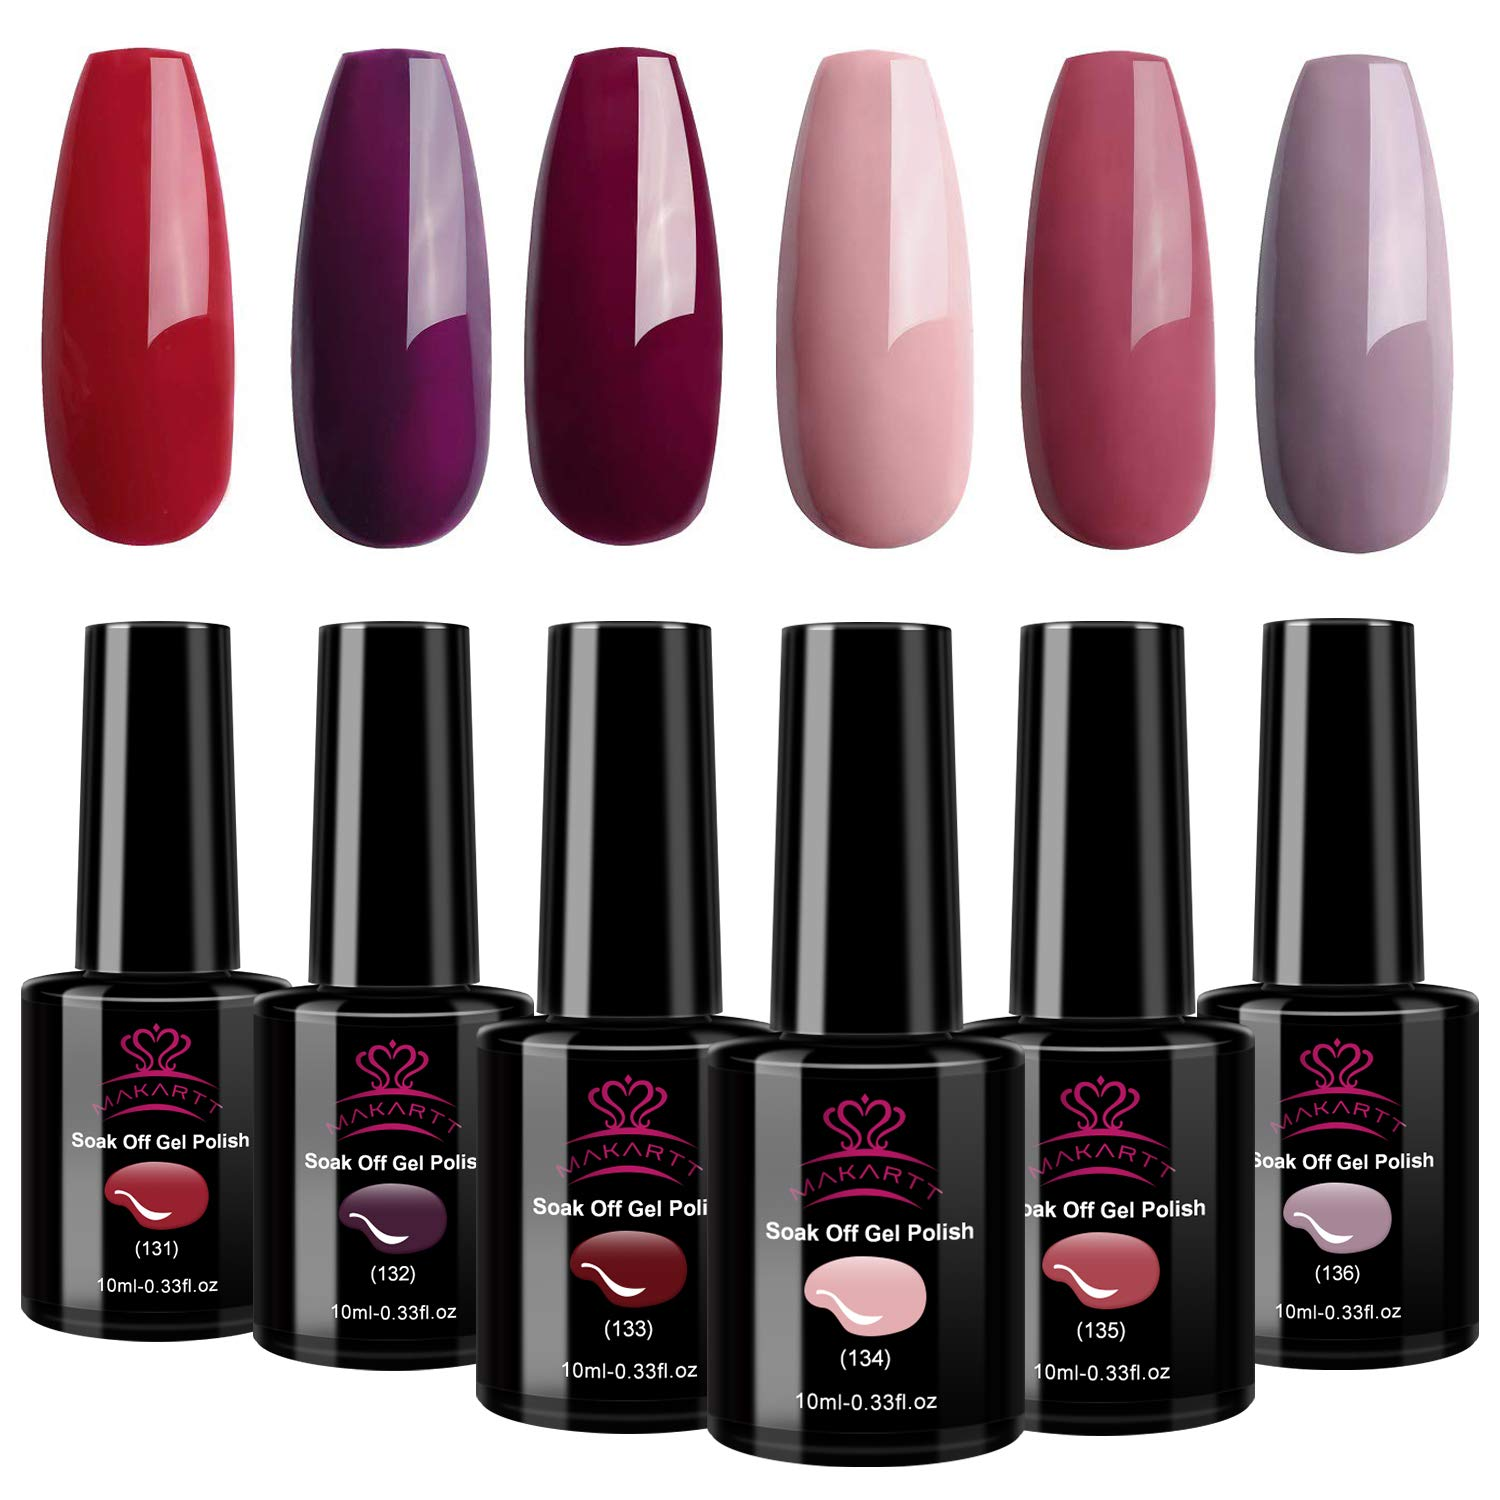 Makartt P-13 Burgundy Red Gel Nail Polish Kit 10ML 6 Bottles Pink Nude Sangria Fall Glamour Nail Gel Polish Soak Off UV LED Curing for Manicure Pedicure with Gift Box by Makartt